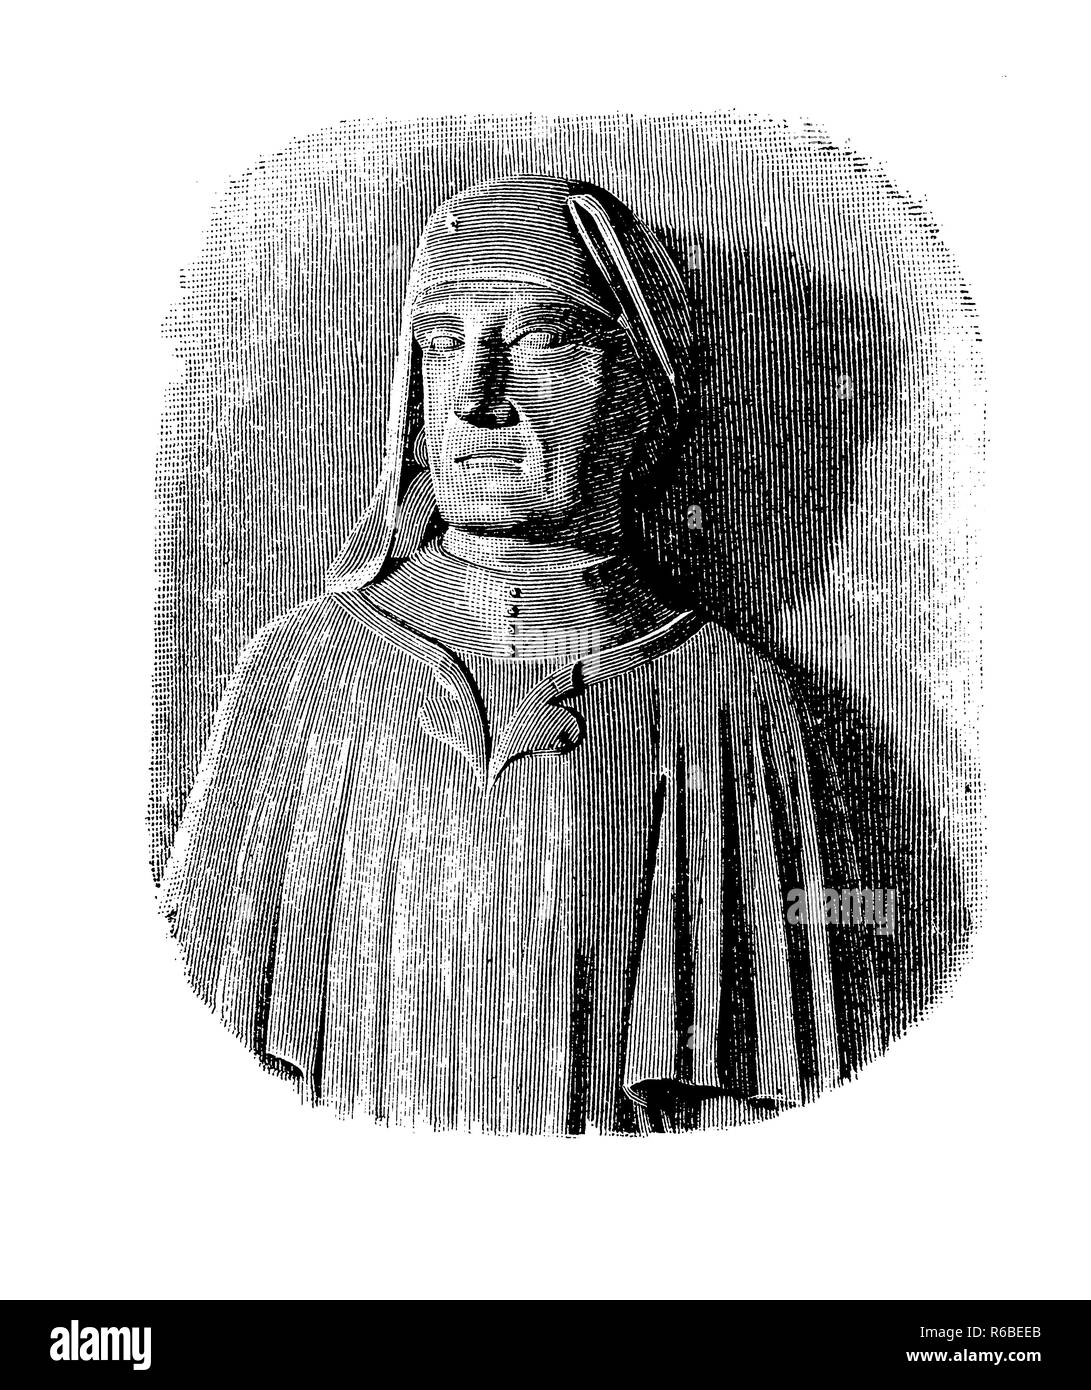 Vintage engraving portrait of Cino da Pistoia (1270  - 1336),  Italian jurist of important legal work, poet and law professor at the universities of Siena, Florence, Perugia, and Naples - Stock Image